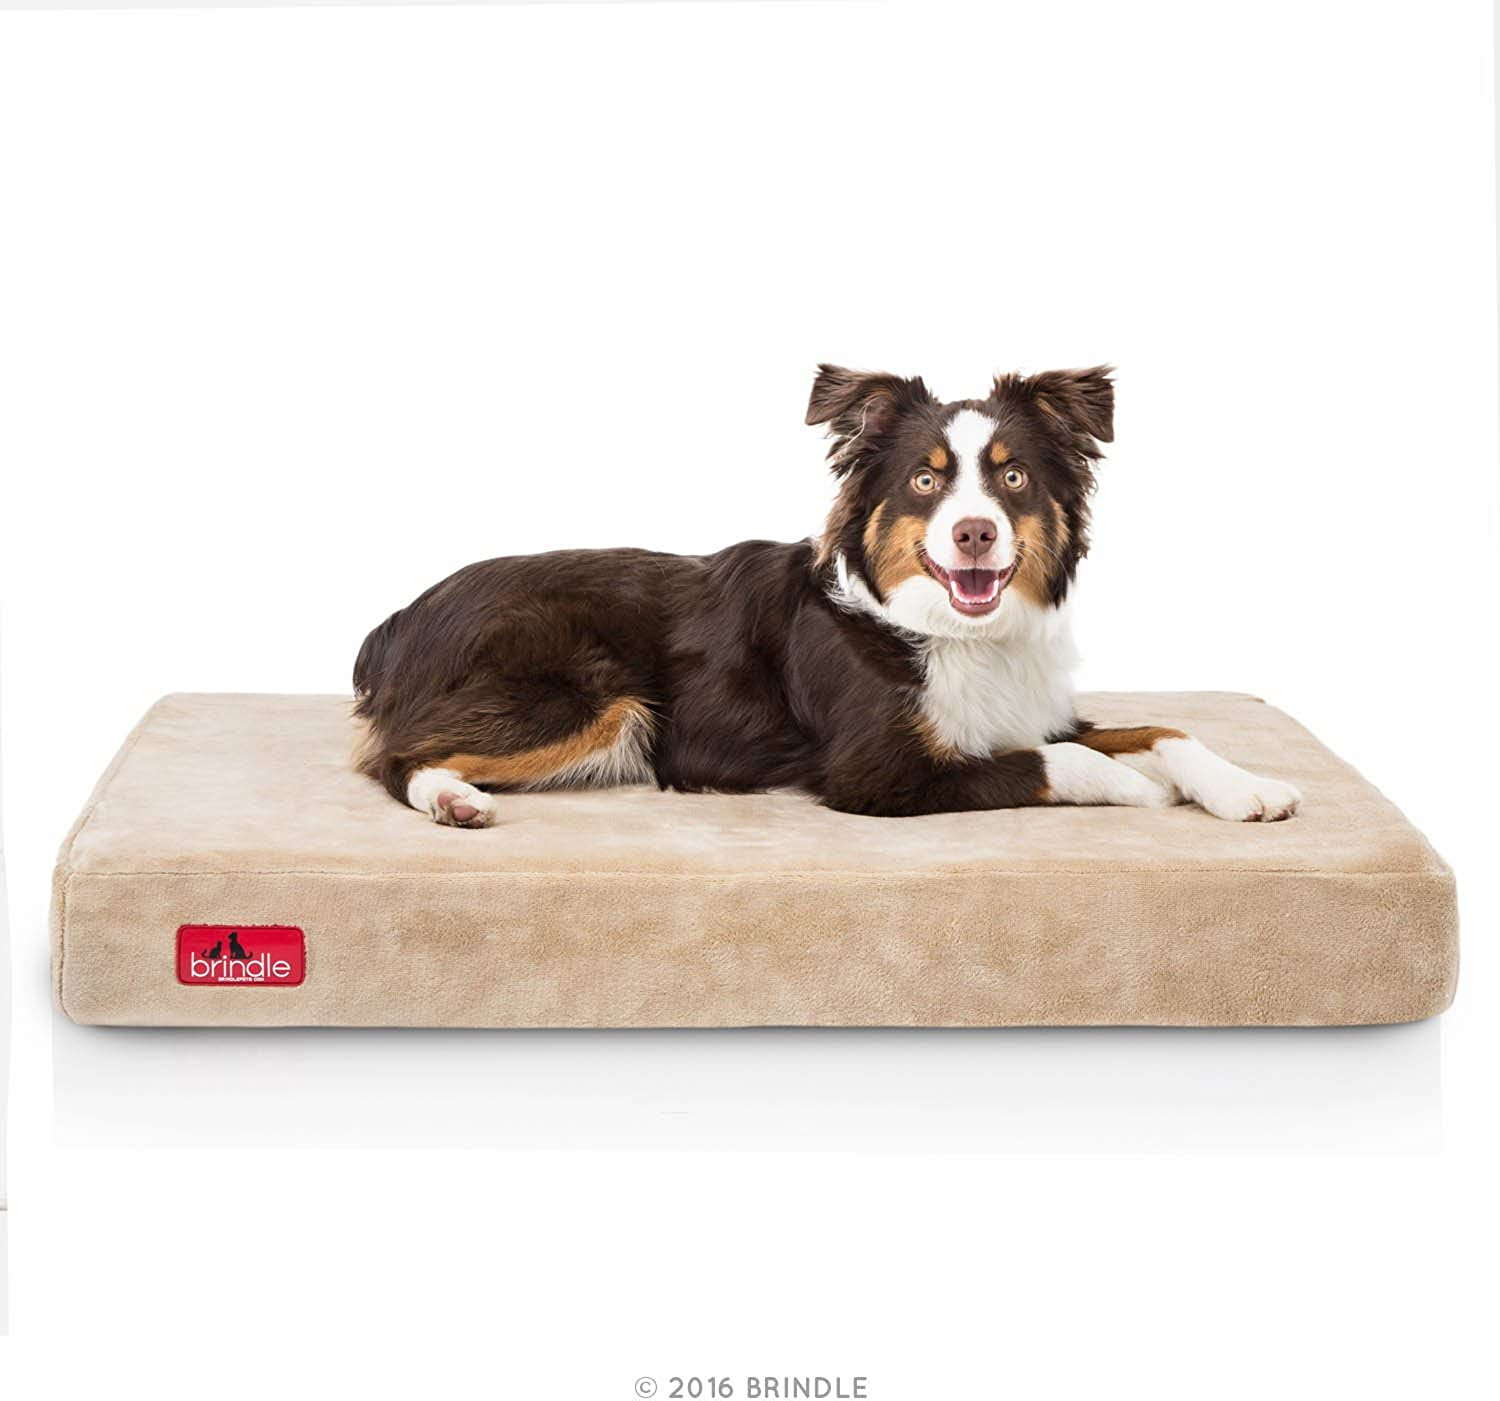 Brindle 4 Inch Memory Foam Orthopedic Dog Bed  Removable Velour Cover with Waterproof Liner  Medium Khaki 34 Inch x 22 Inch